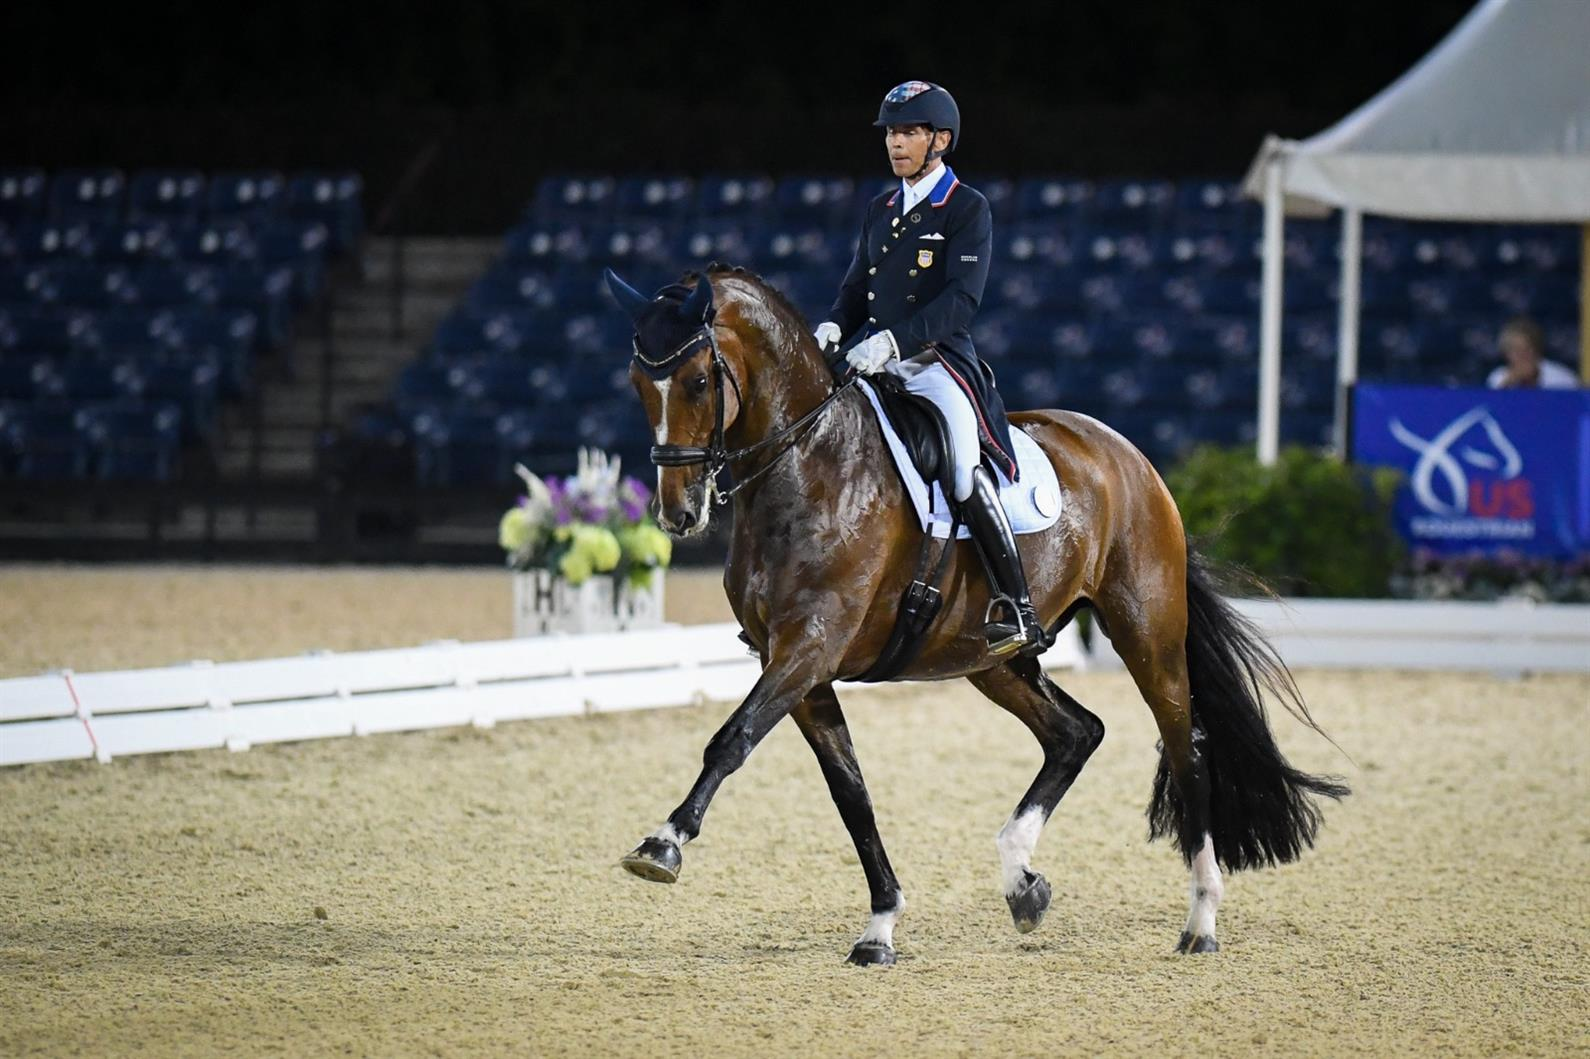 Steffen Peters and Suppenkasper